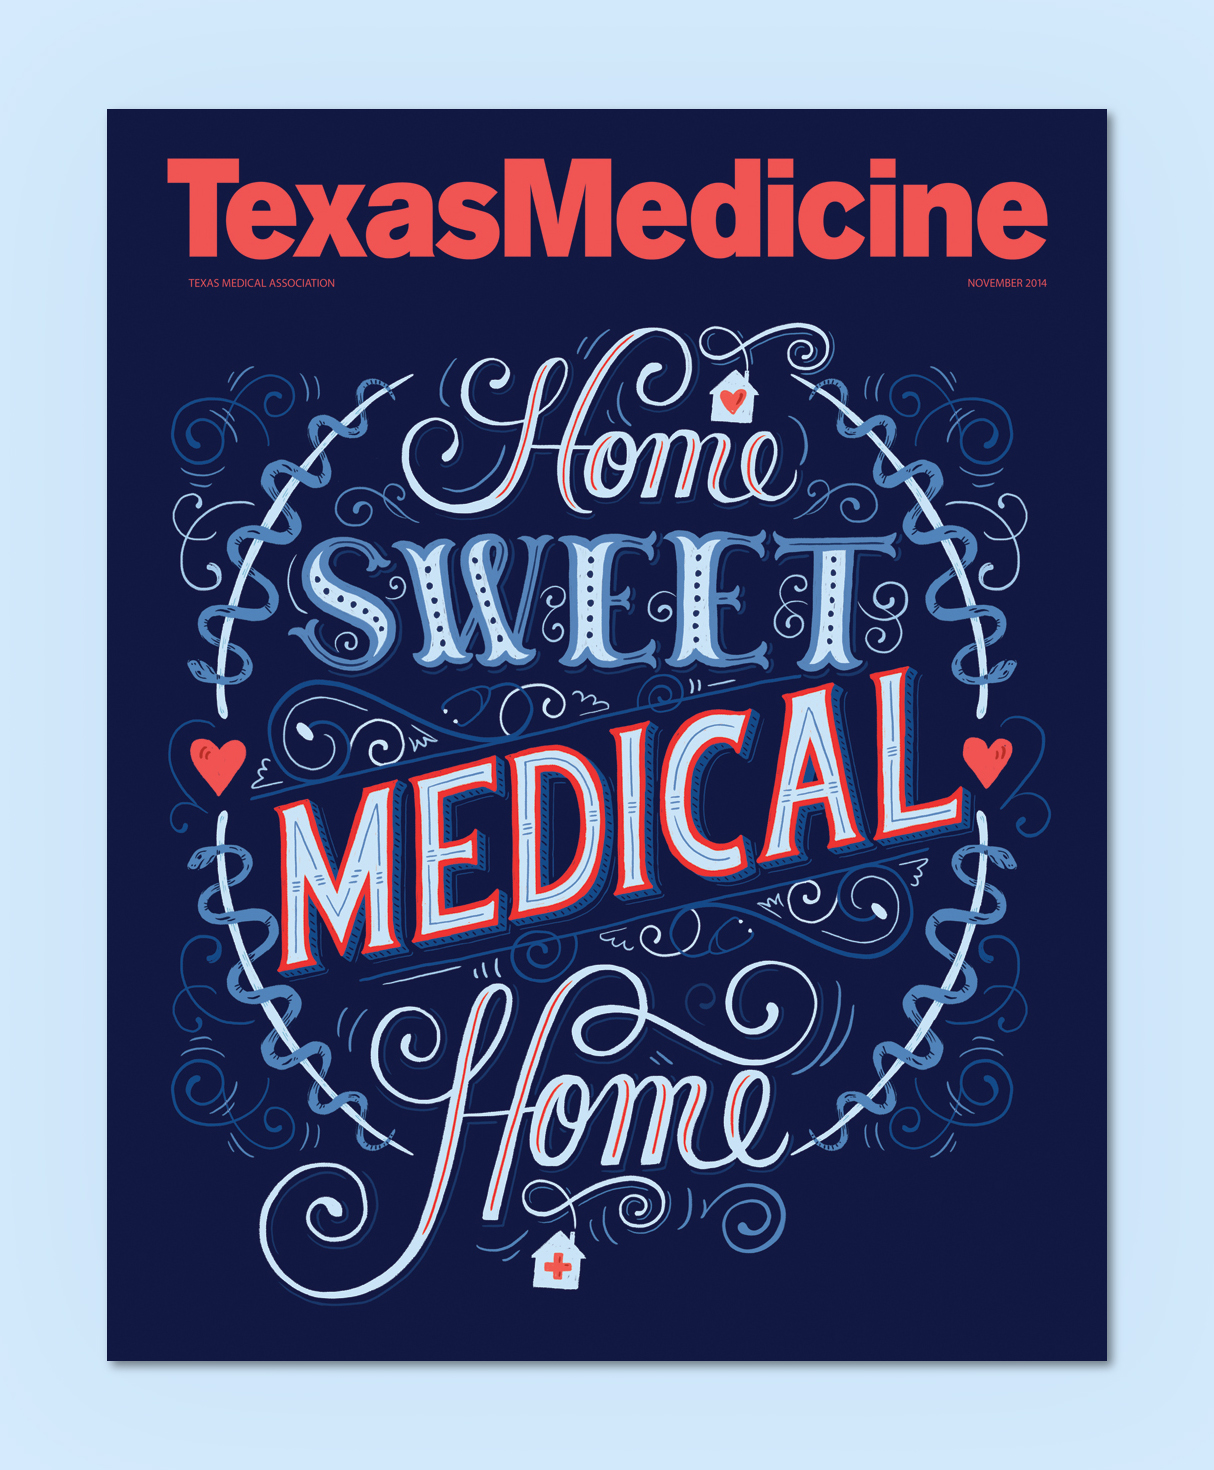 Texas Medicine Cover by Mary Kate McDevitt - www.marykatemcdevitt.com